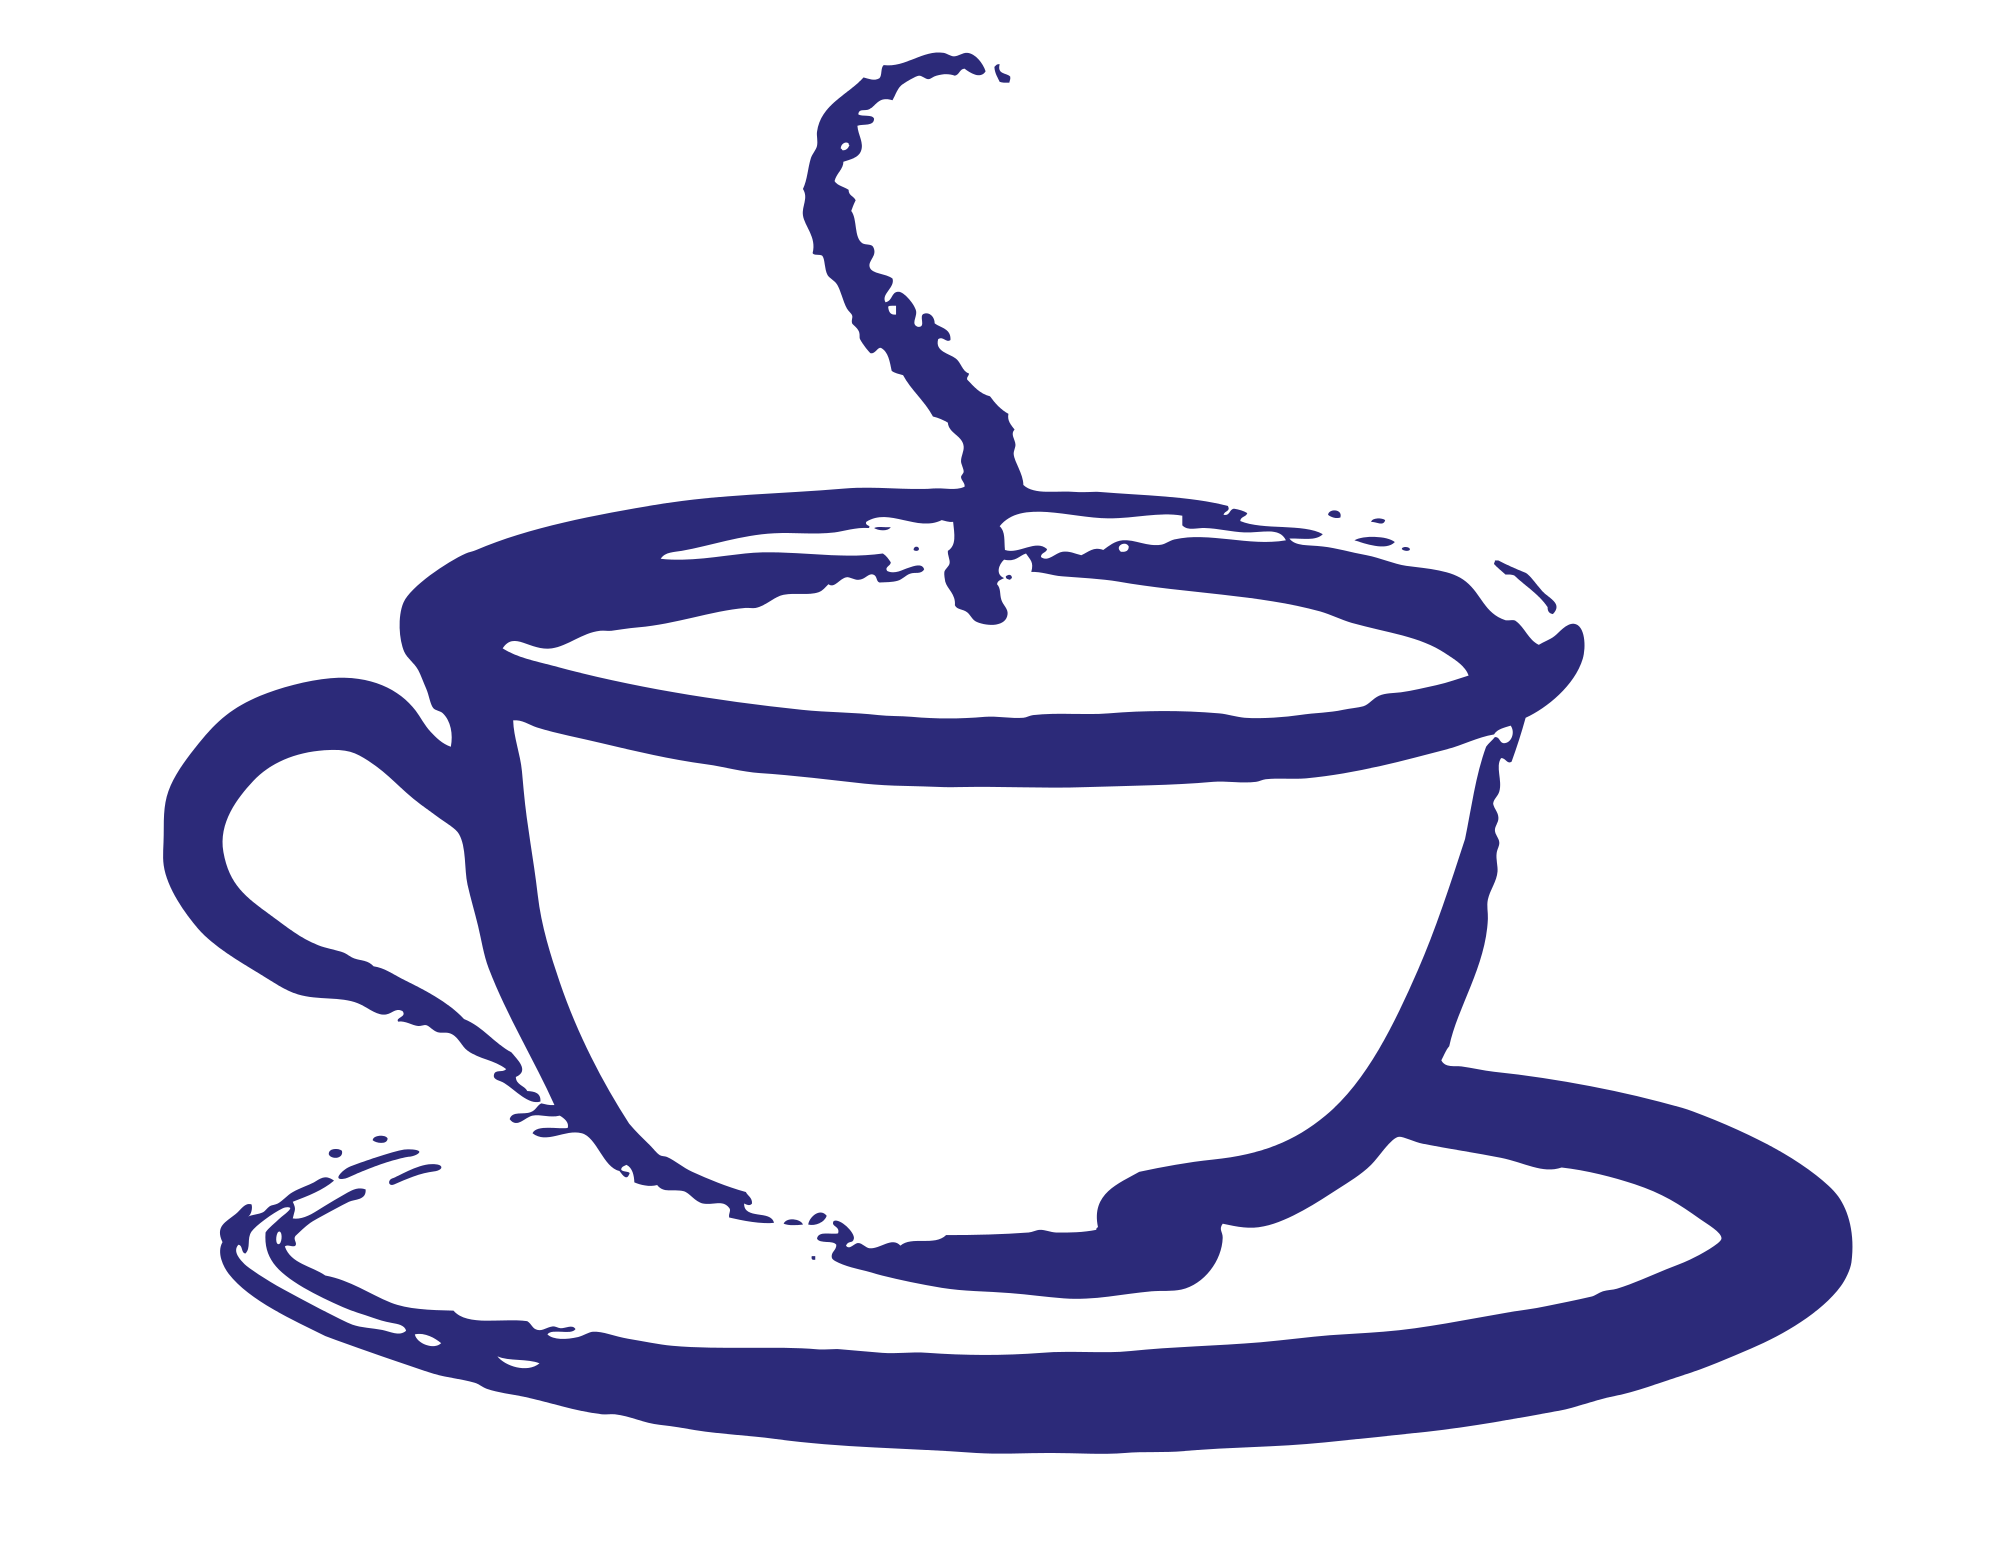 Photo clipart file. Teacup svg wikimedia commons